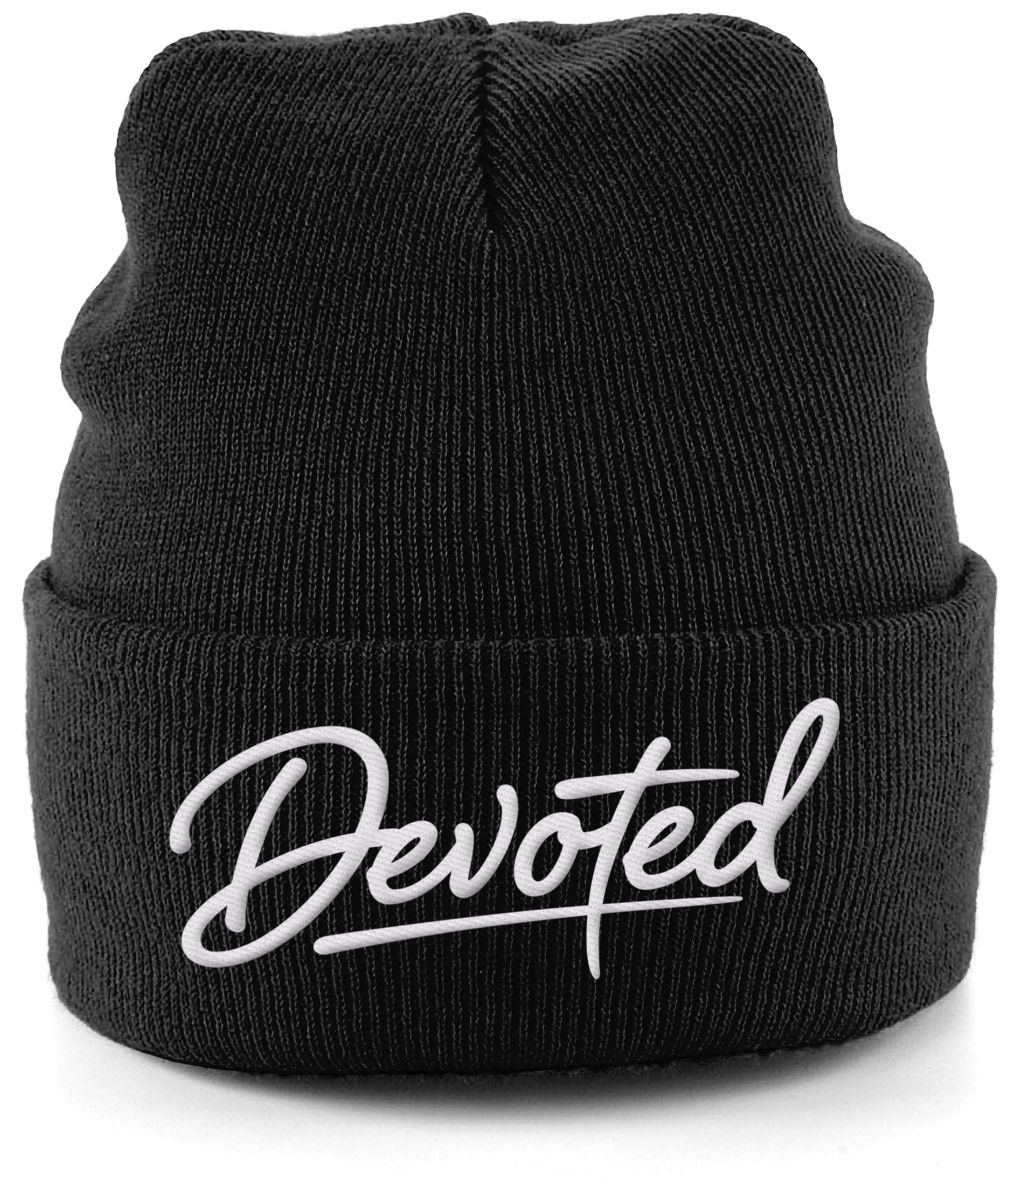 3f5a9ea7bc2 Be cool in a black beanie at Devoted this year 2018! Buy online only and